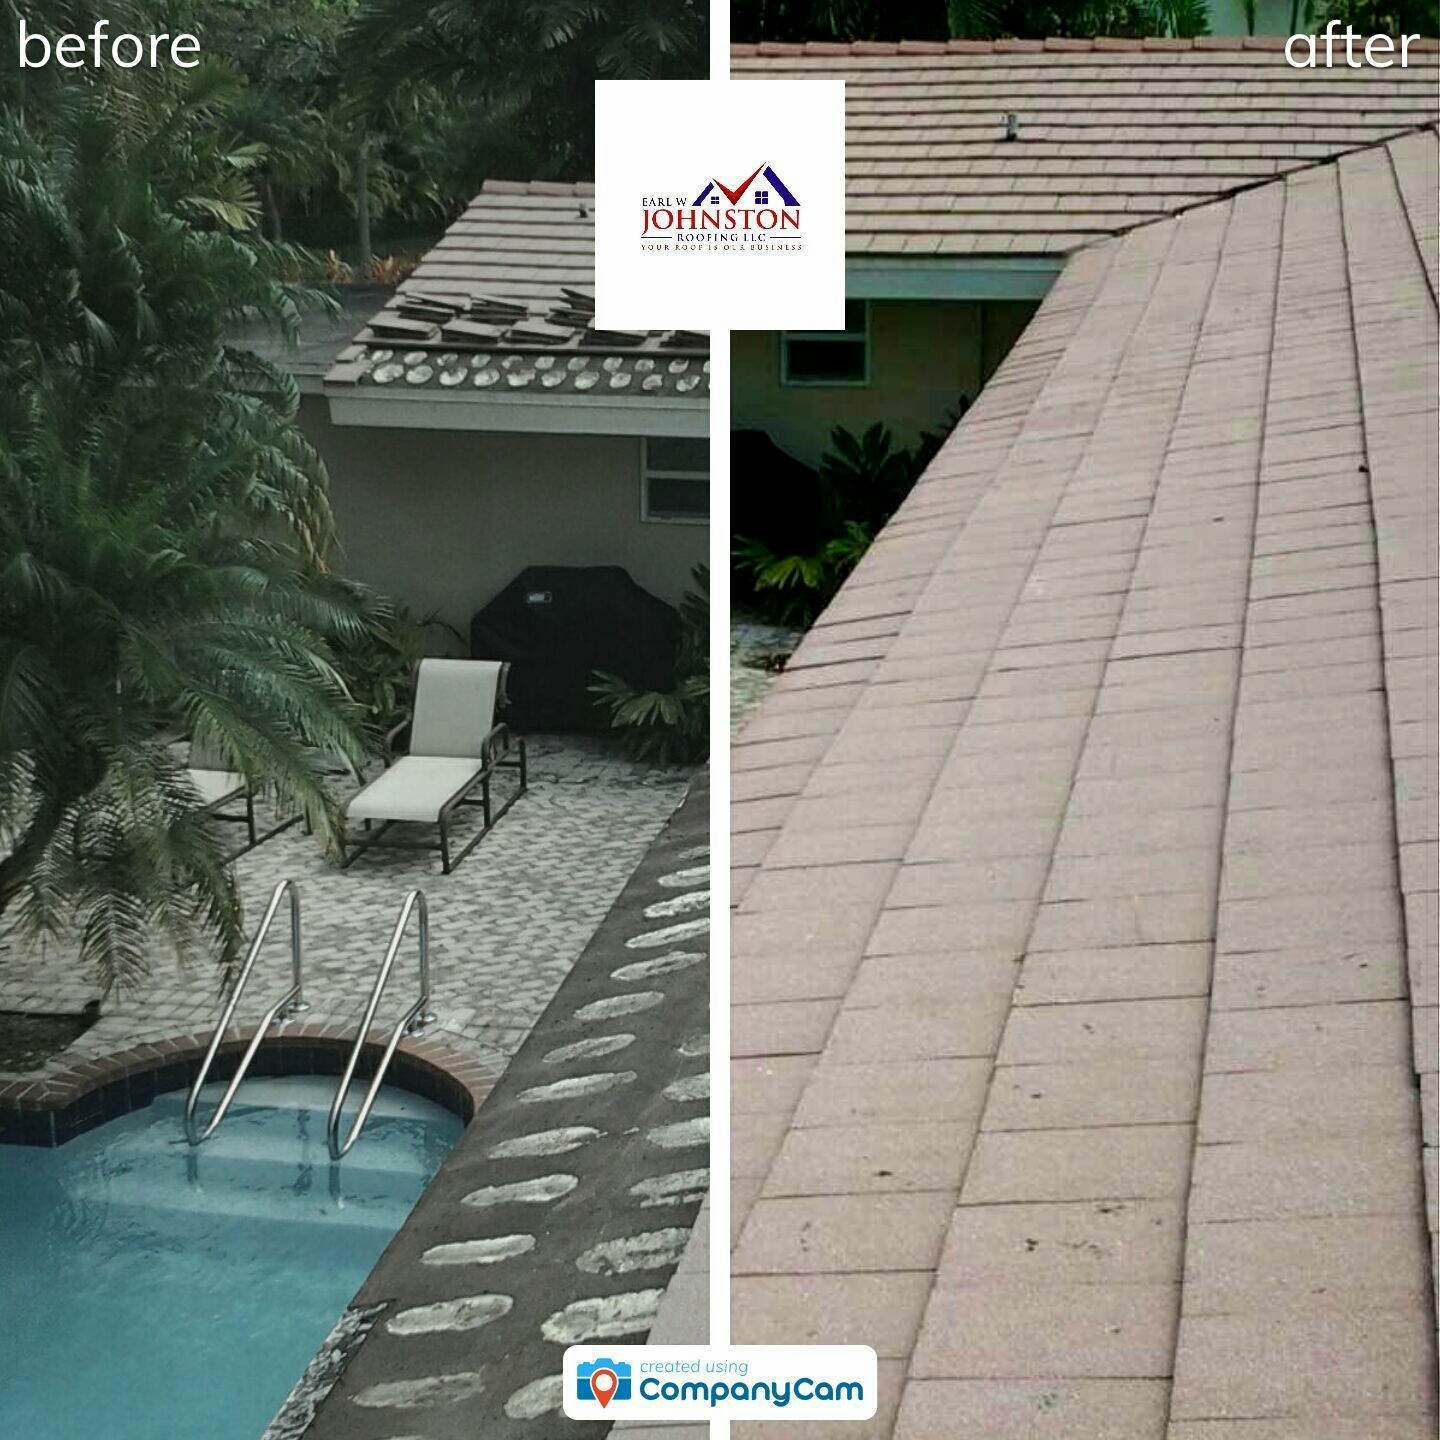 Pinecrest, FL - Mike and Earl Johnston roofing completed a tile repair